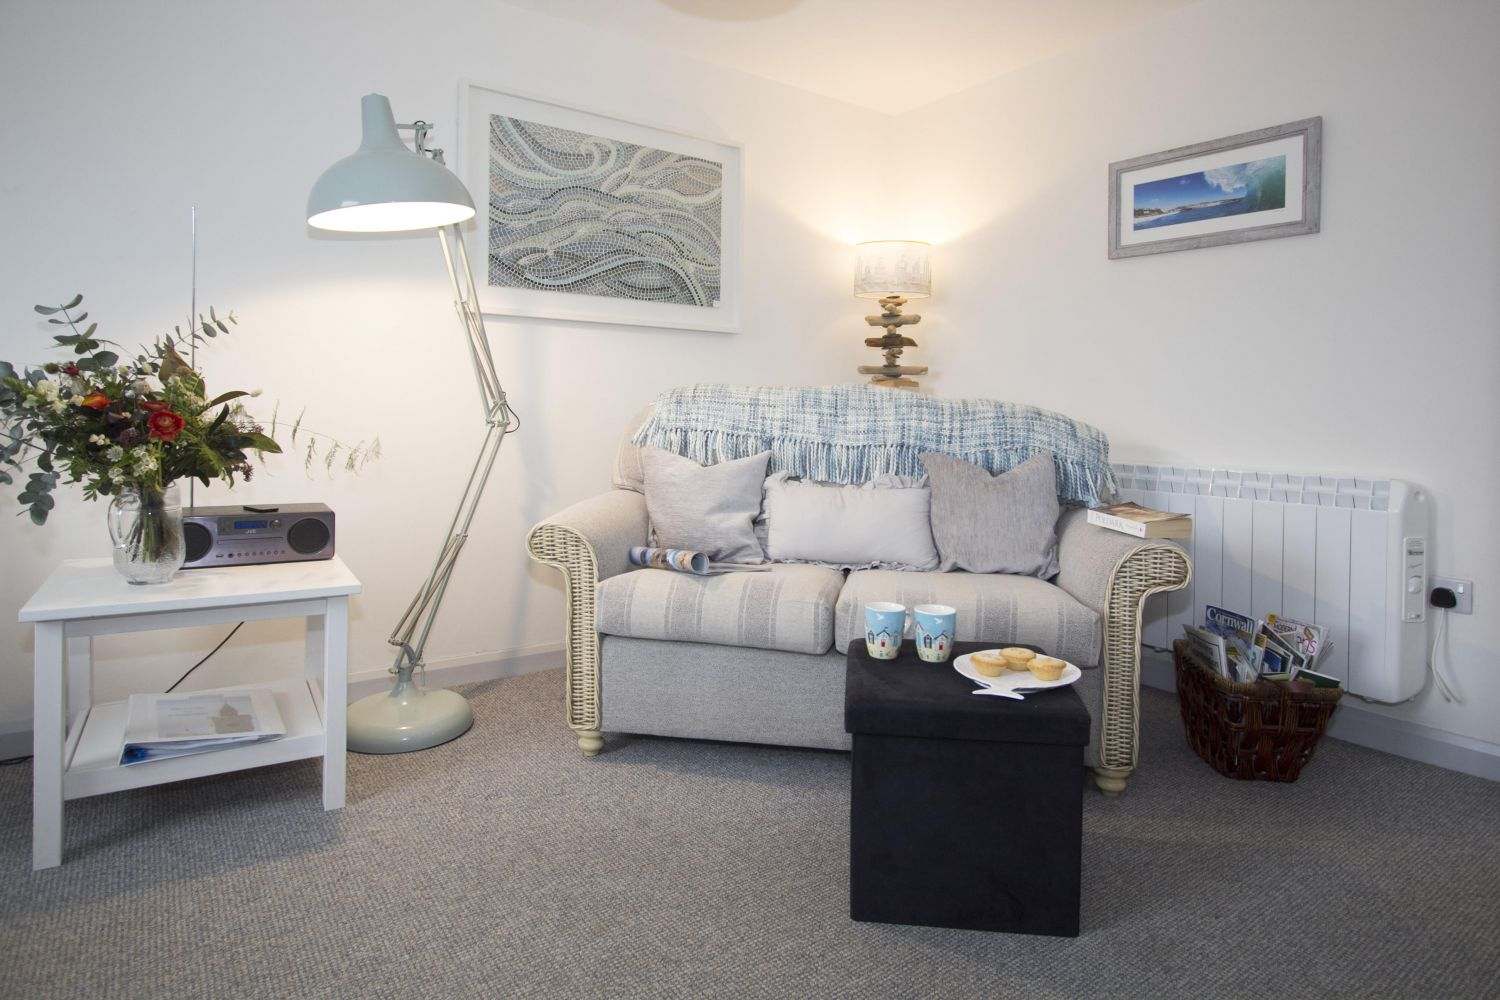 Wavecrest - Porthleven Holiday Cottages